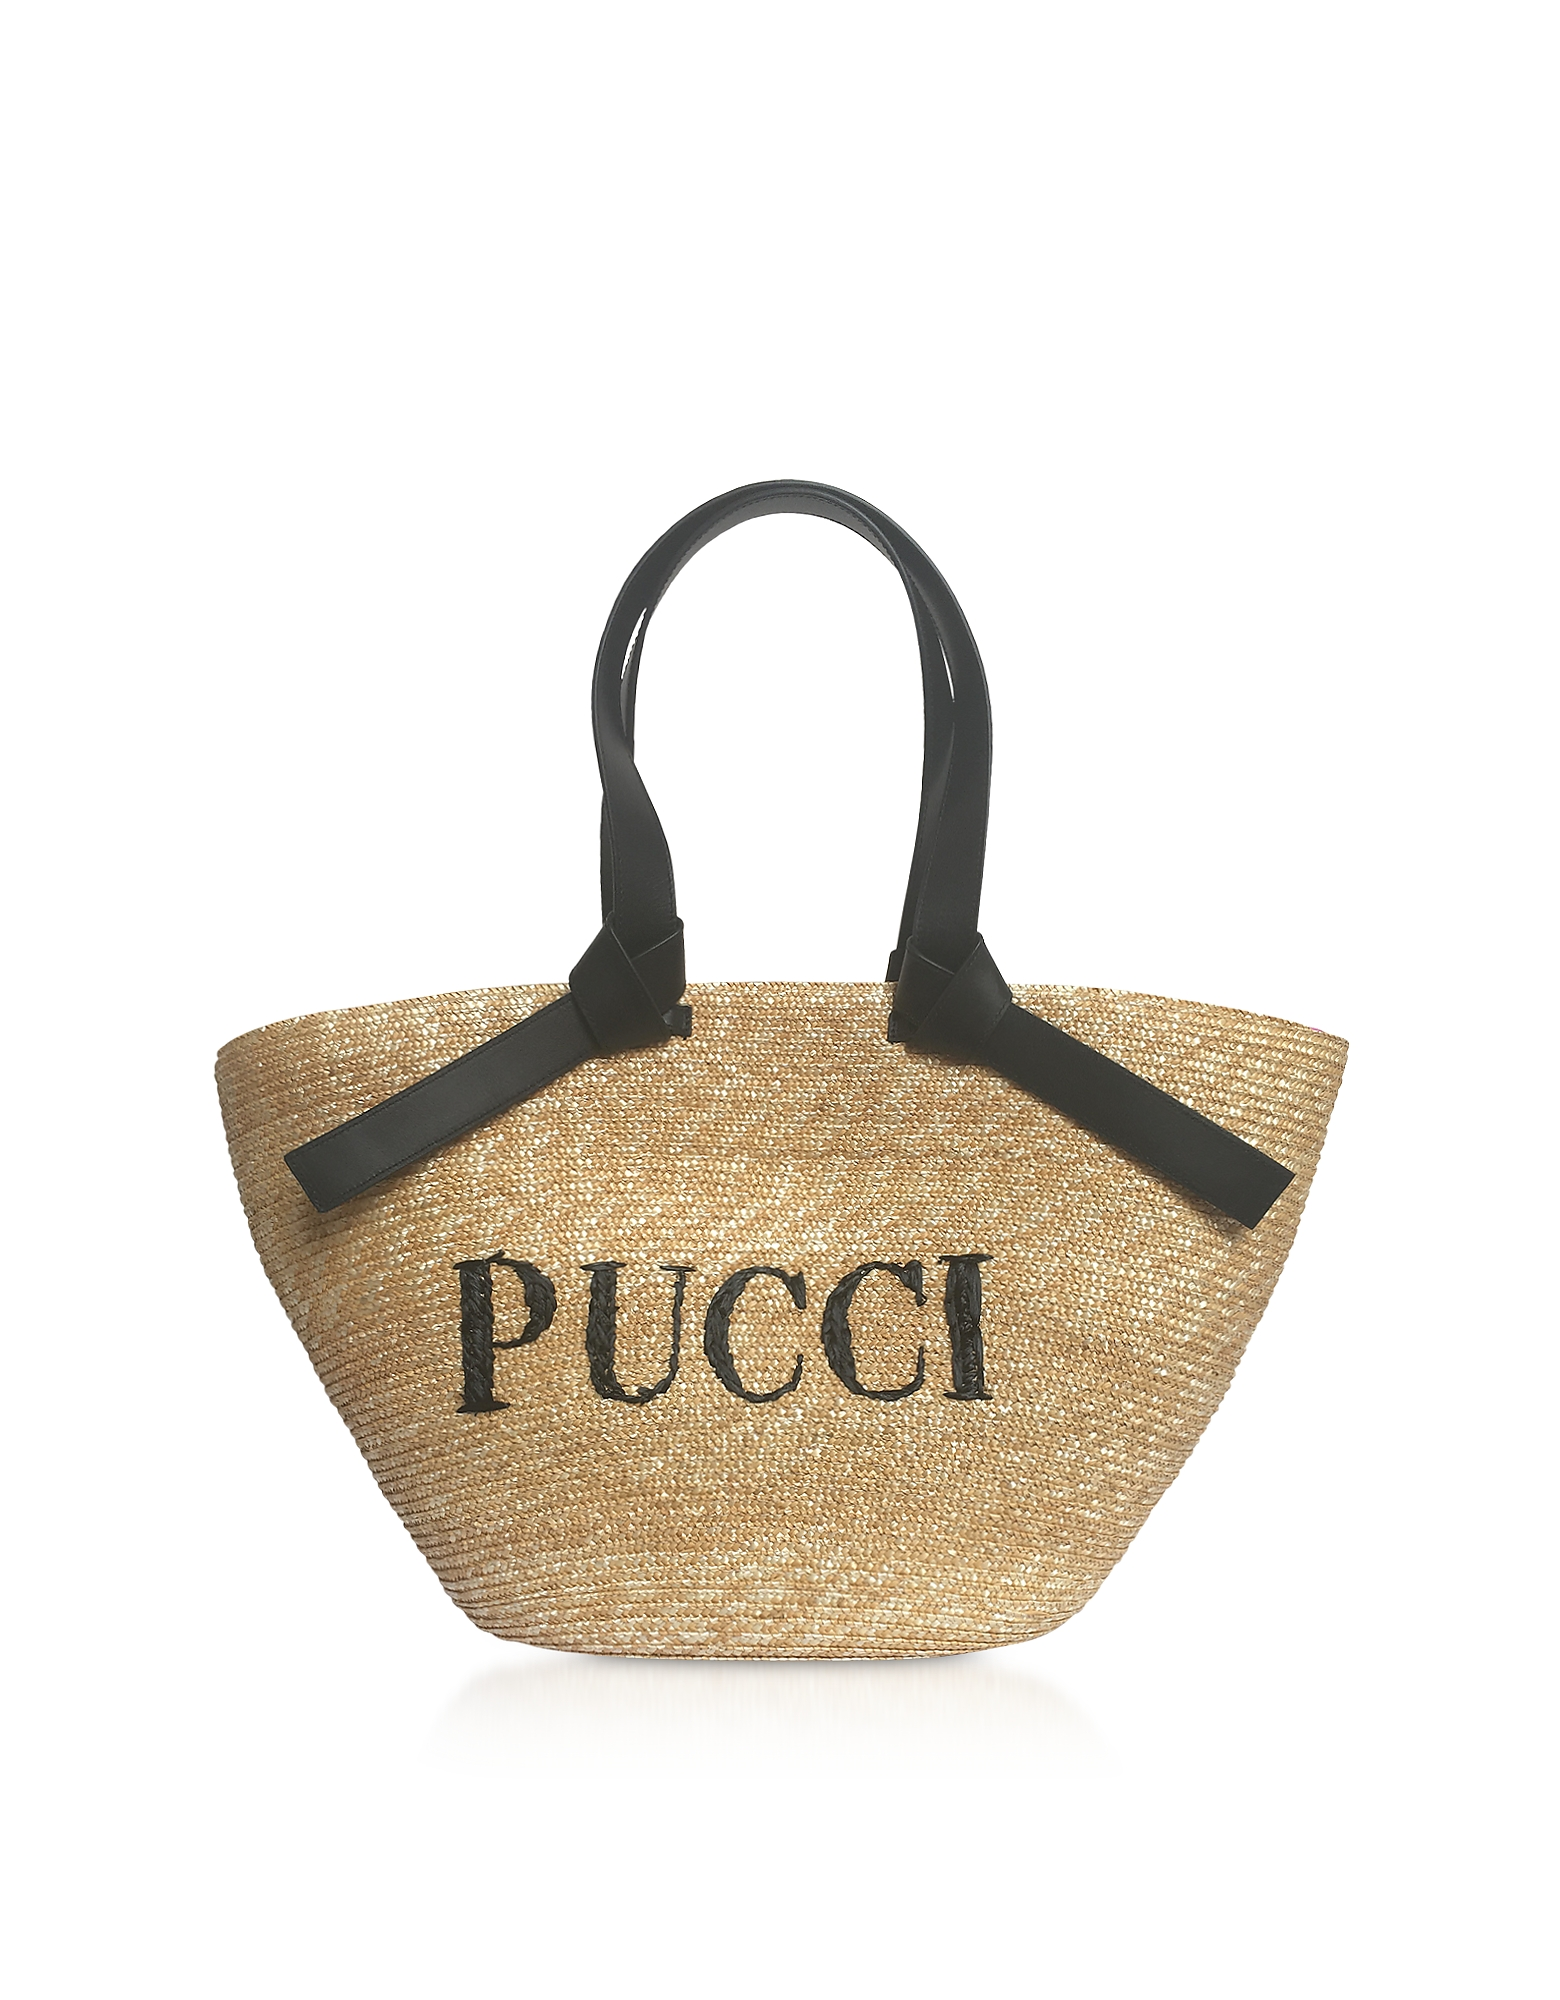 Emilio Pucci Handbags, Raffia Signature Bucket Bag